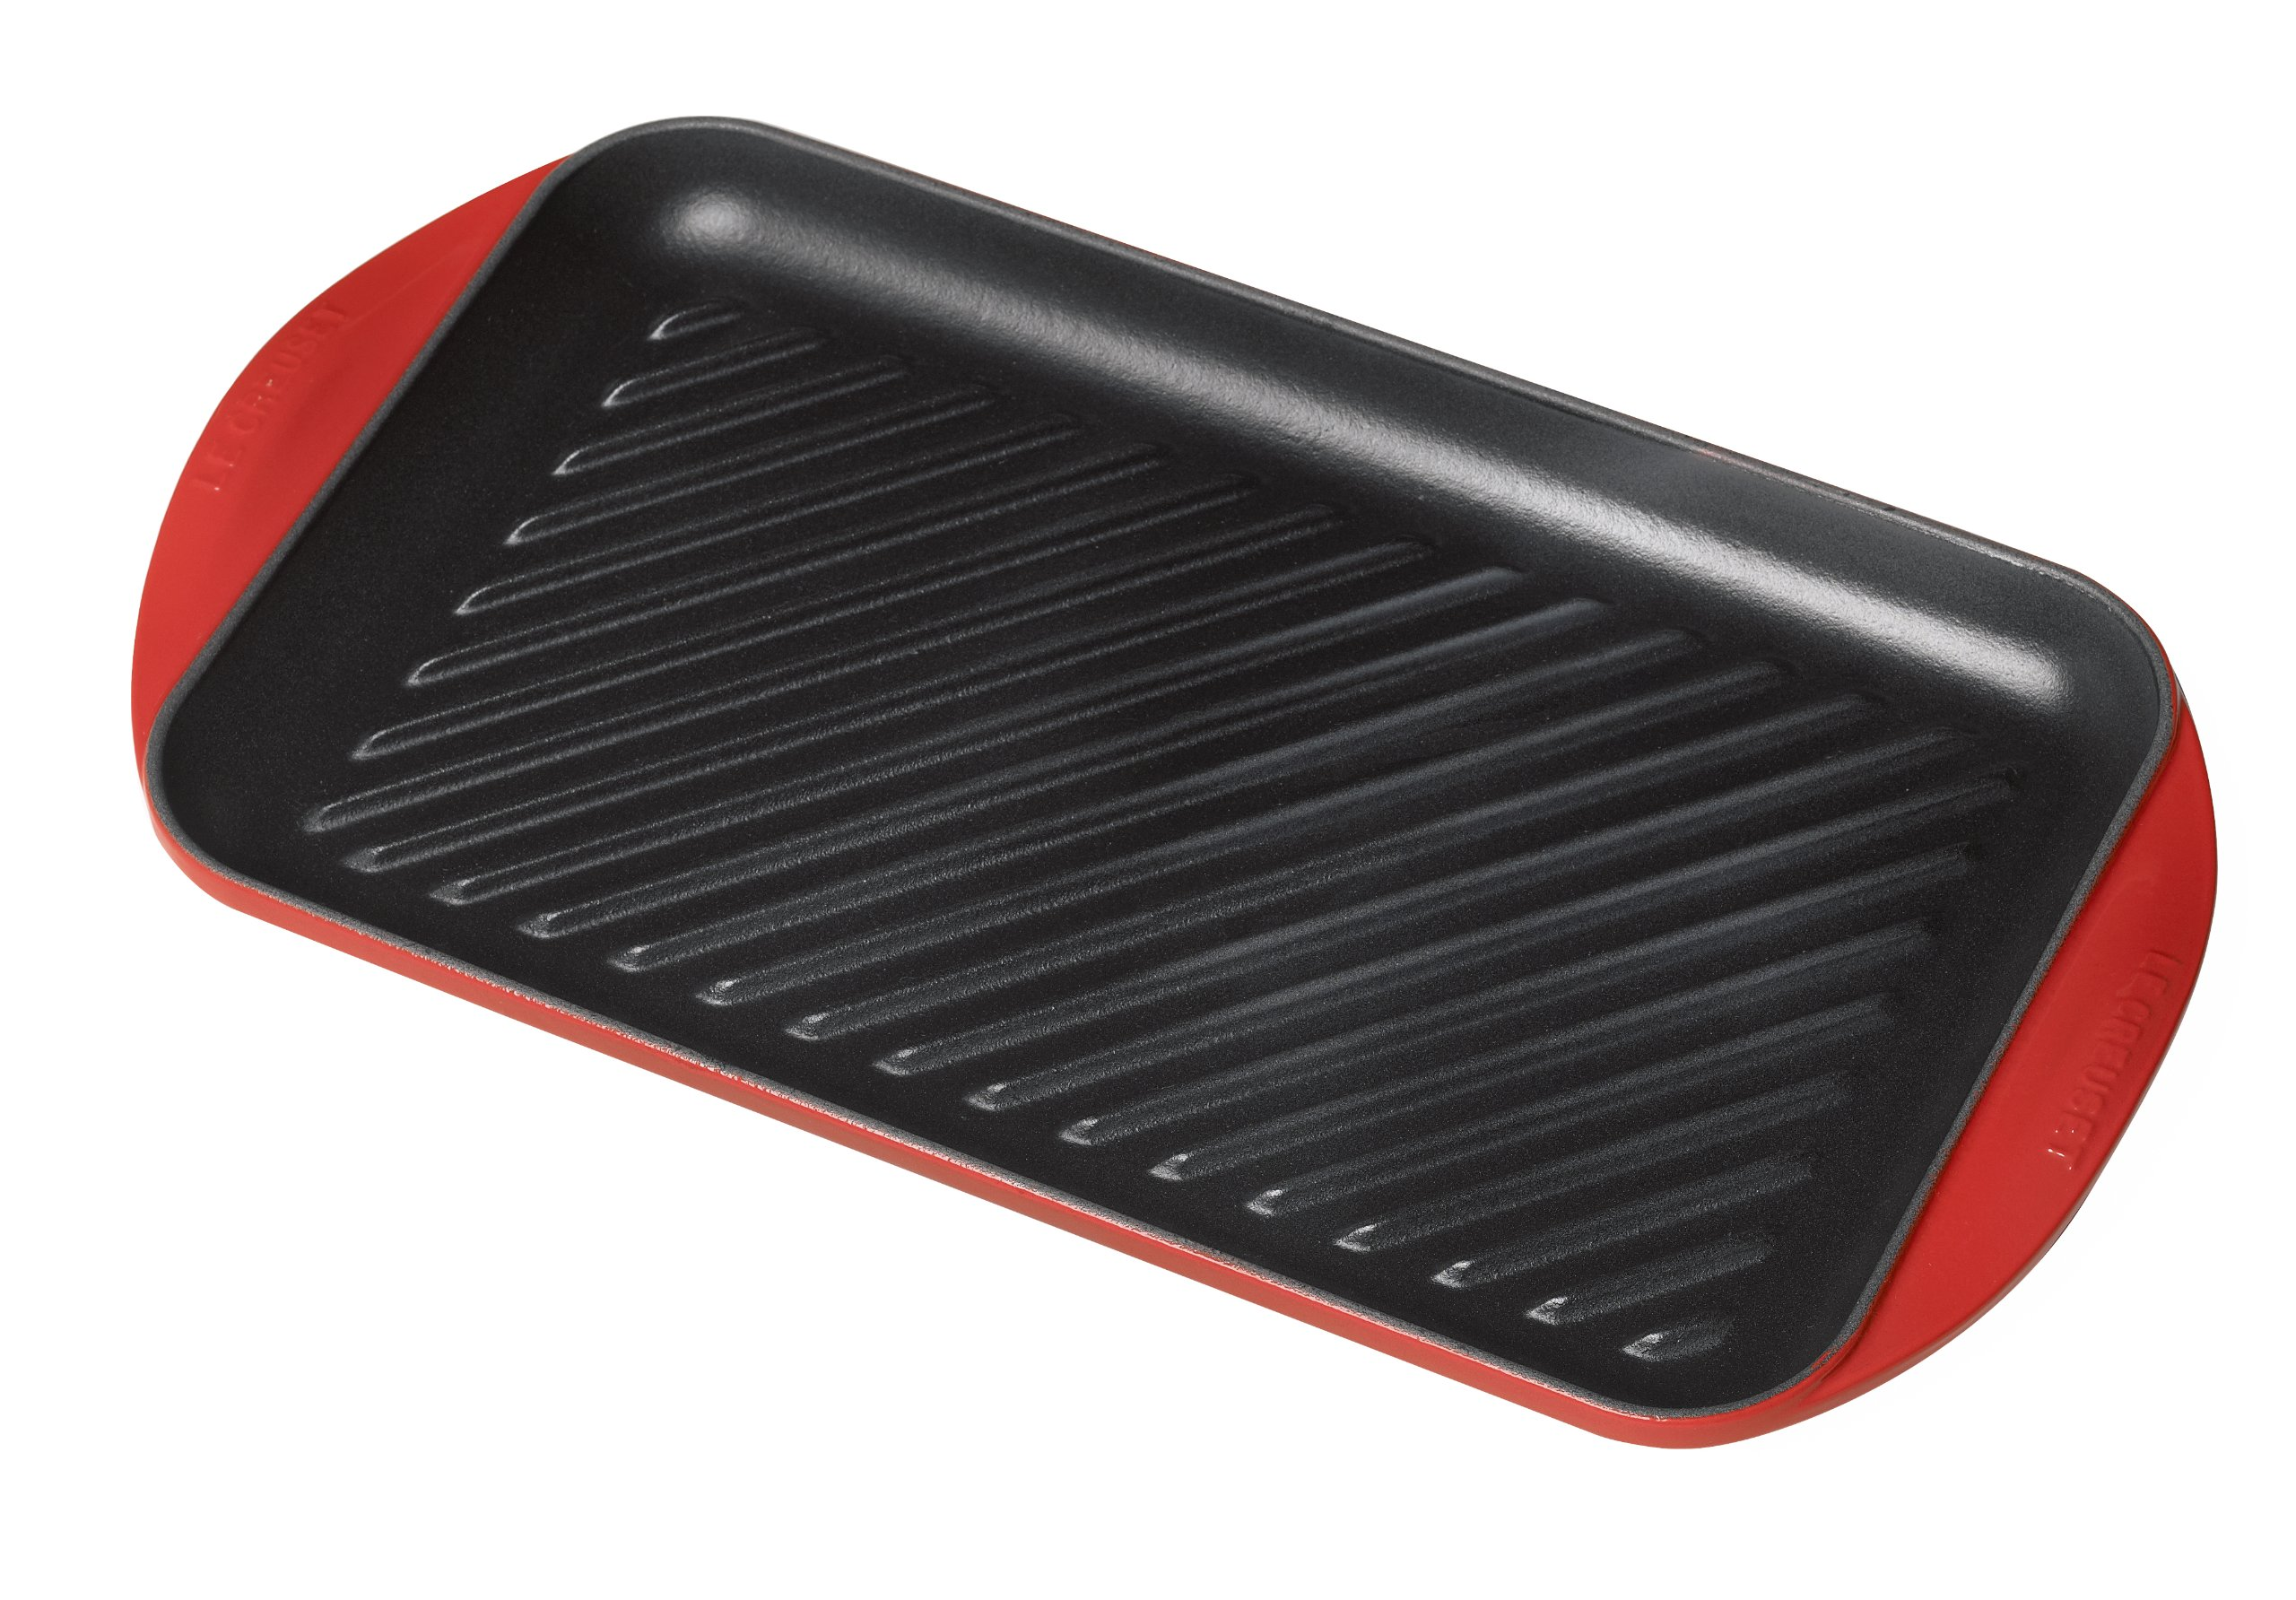 Le Creuset of America L2032-4067 Enameled Cast Iron Double Burner Grill, 15 3/4'' x 9'' x 1''/X-Large, Cherry